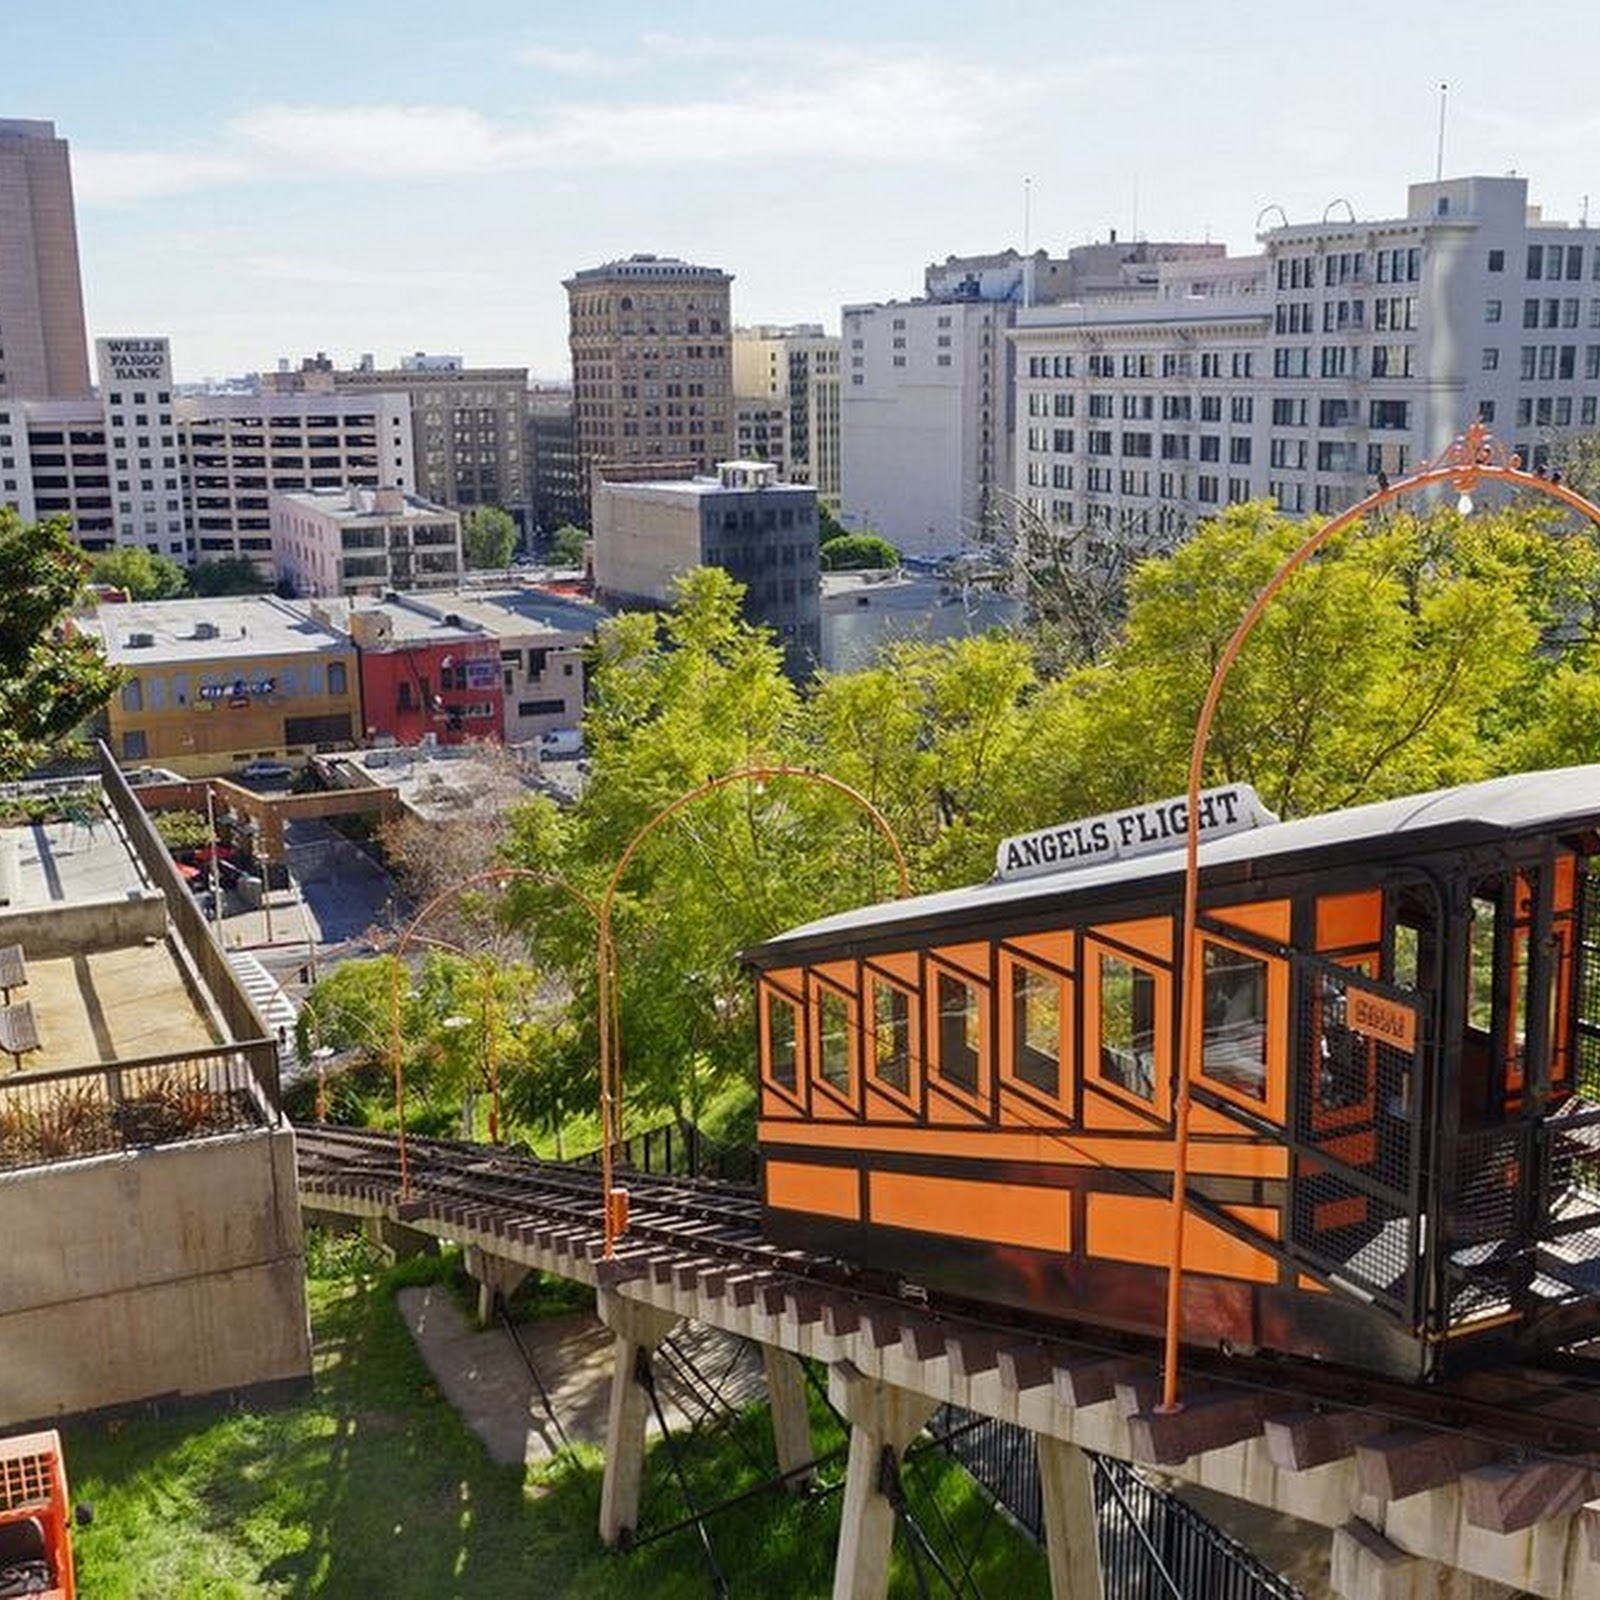 Angels Flight: The World's Shortest Railway